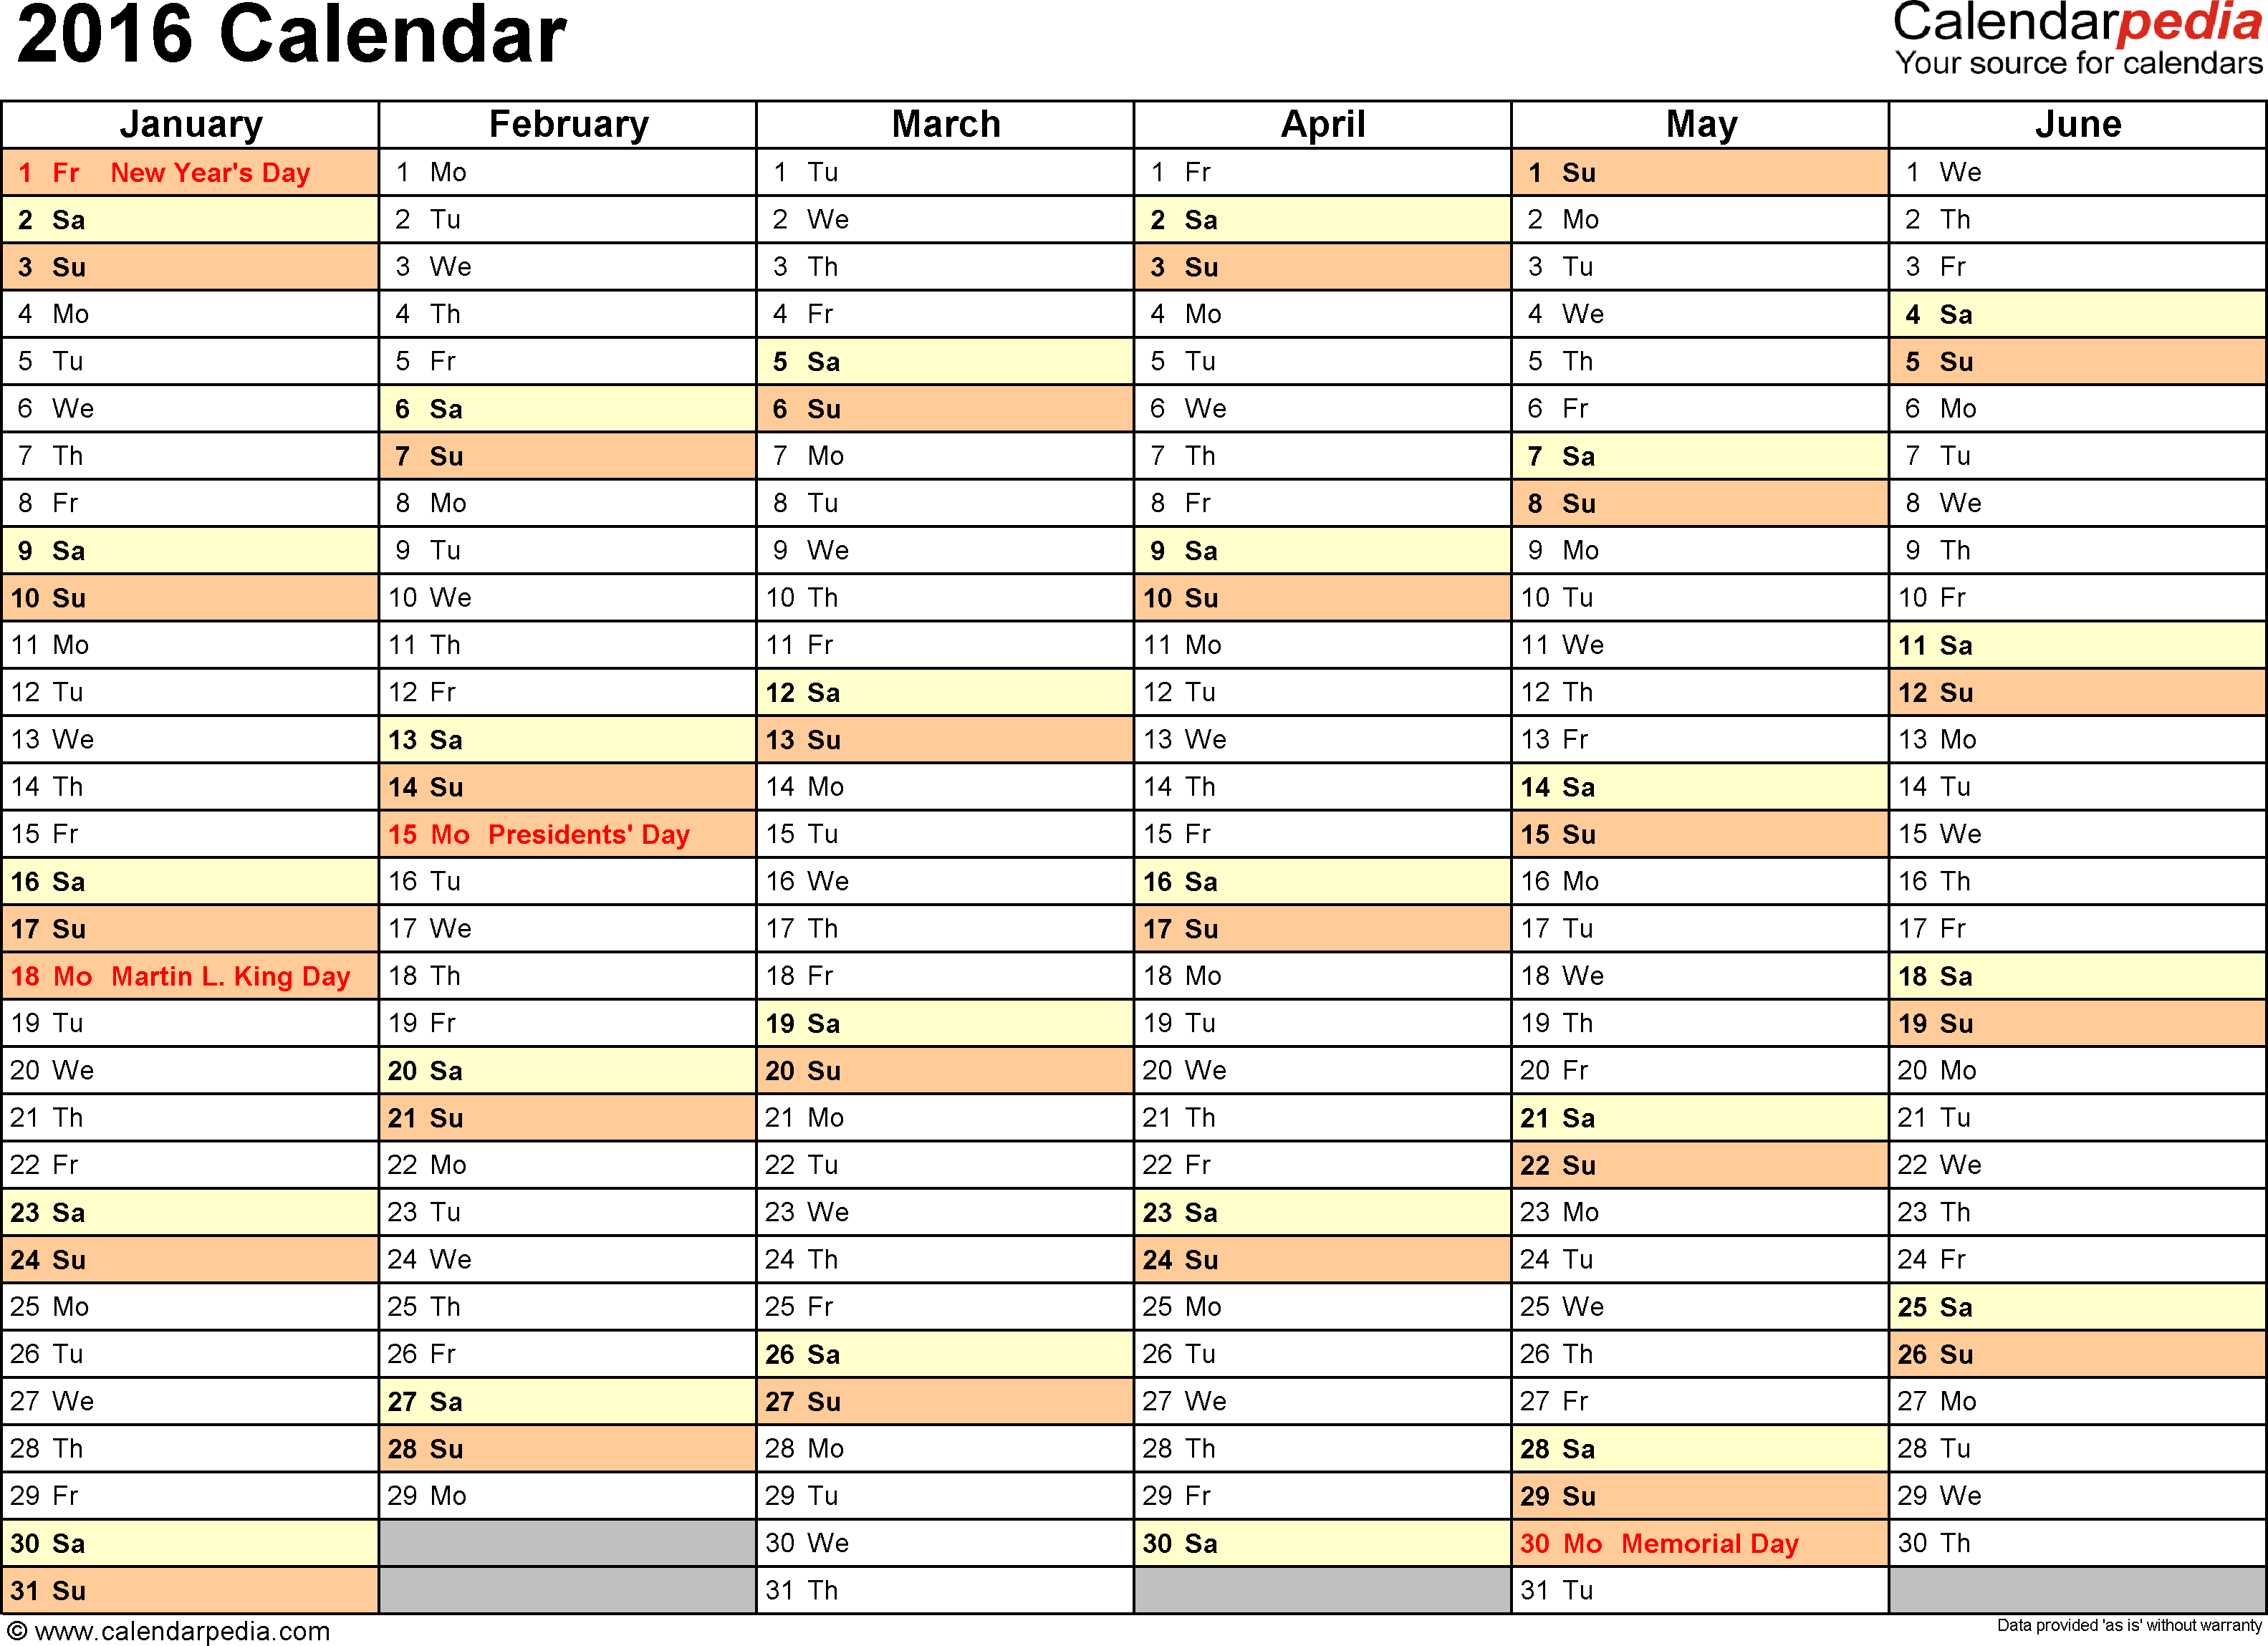 Ediblewildsus  Personable  Calendar  Download  Free Printable Excel Templates Xls With Marvelous Template   Calendar For Excel Months Horizontally  Pages Landscape Orientation With Alluring Excel Vba Create New Worksheet Also Formula For Percent Change In Excel In Addition Excel Formula For Counting Cells And Add Drop Down List To Excel As Well As Excel Spreadsheet Formula Additionally Excel Macro Not Working From Calendarpediacom With Ediblewildsus  Marvelous  Calendar  Download  Free Printable Excel Templates Xls With Alluring Template   Calendar For Excel Months Horizontally  Pages Landscape Orientation And Personable Excel Vba Create New Worksheet Also Formula For Percent Change In Excel In Addition Excel Formula For Counting Cells From Calendarpediacom